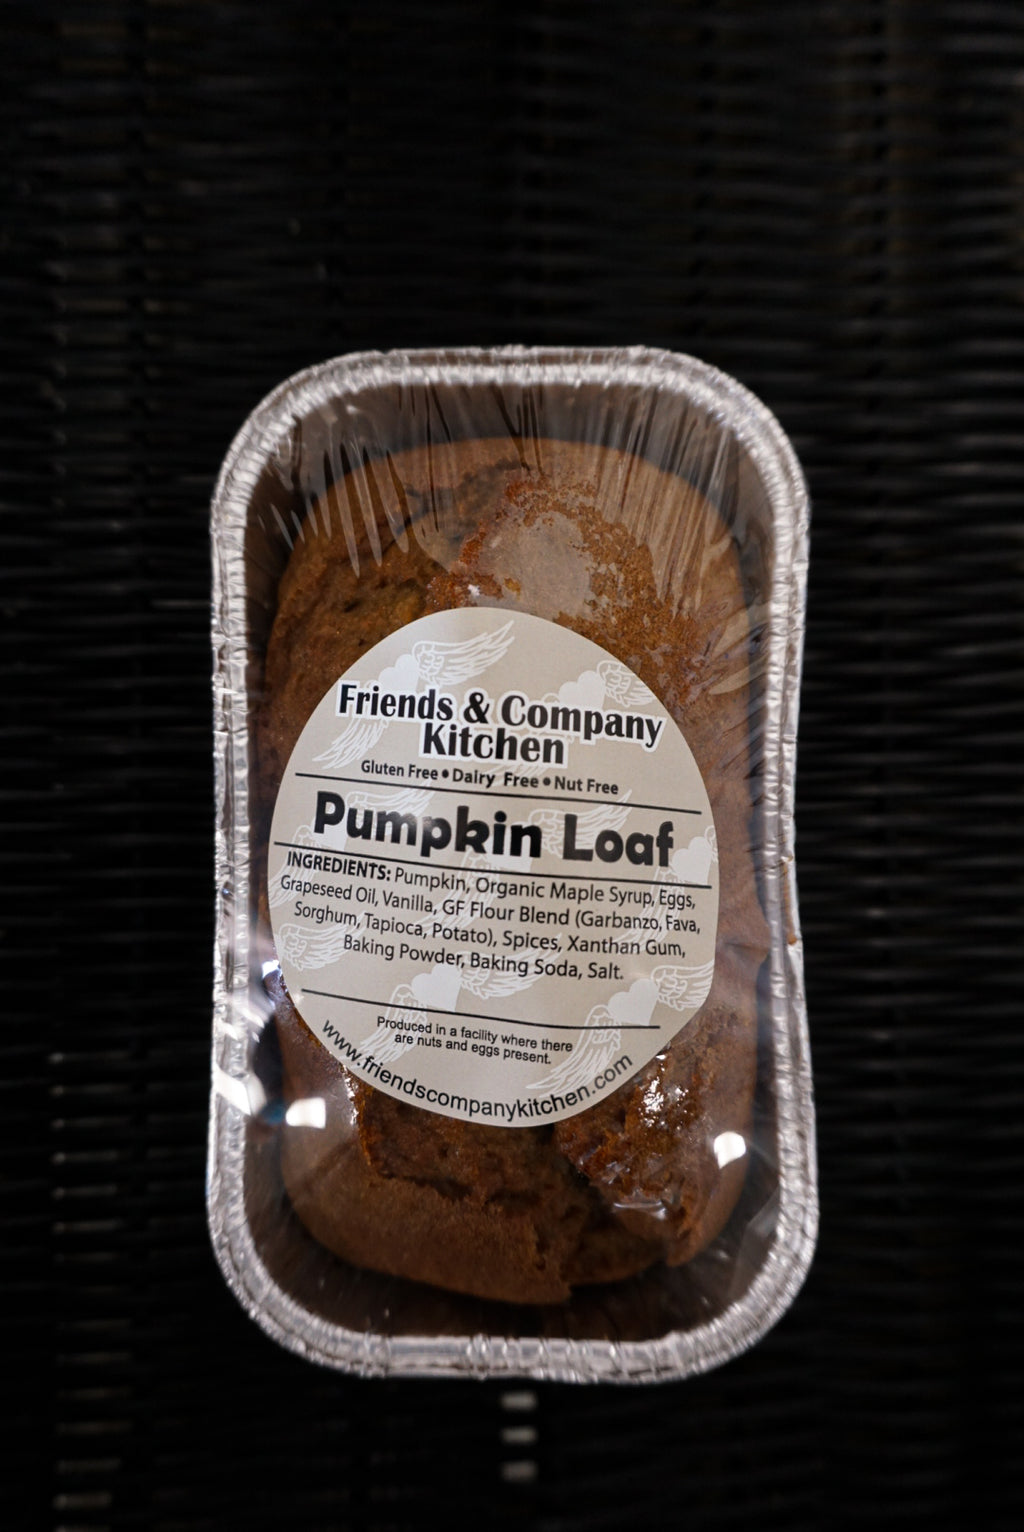 Friends & Company Kitchen Pumpkin Loaf - Larchmont